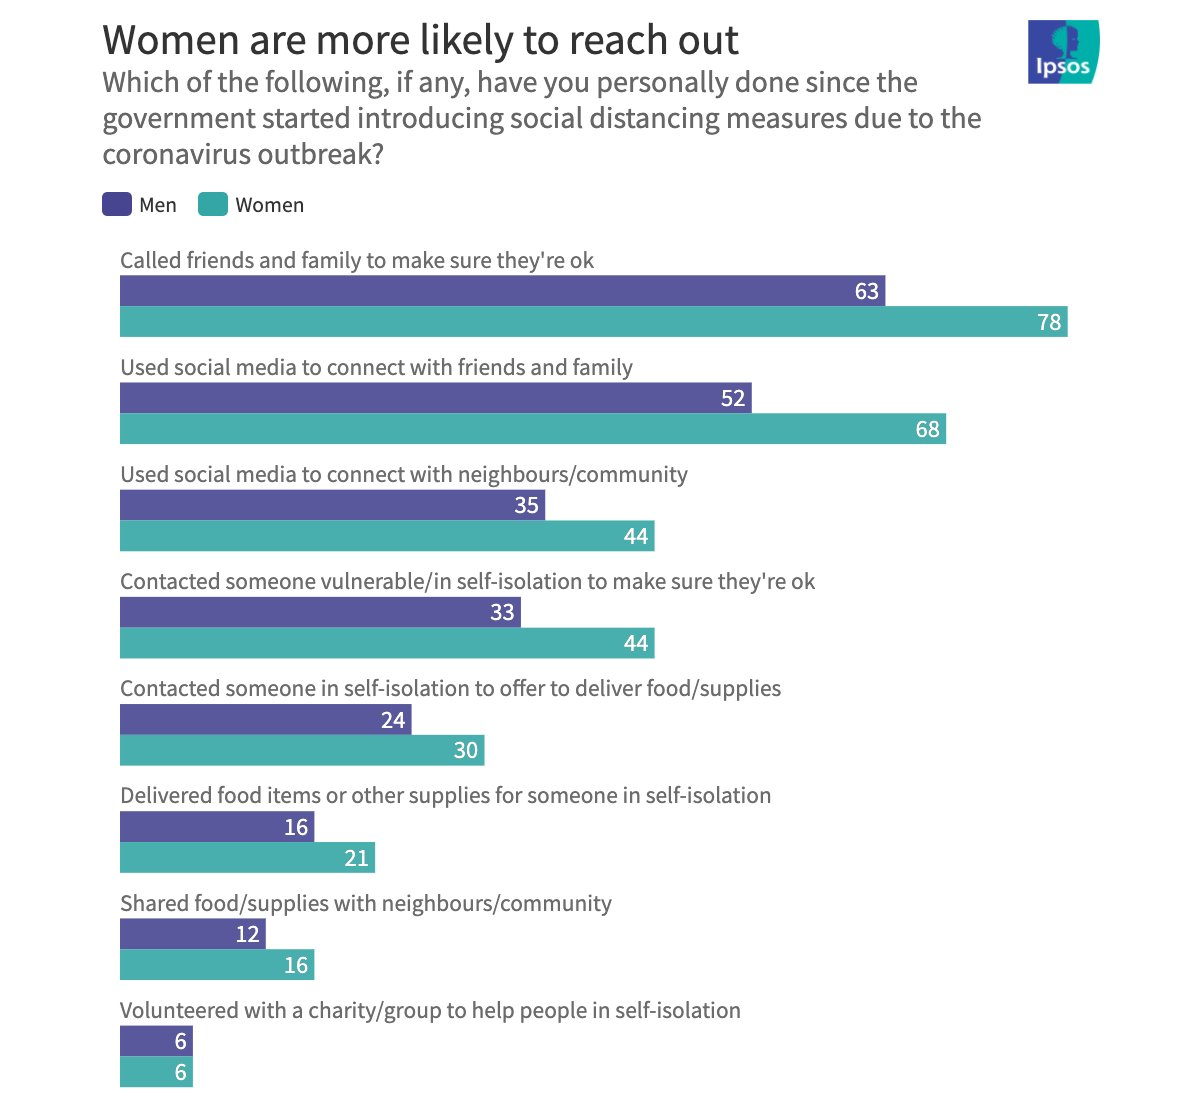 Fascinating research by @IpsosMORI on gender differences in response to coronavirus. I always wonder if part of the picture of male mental health problems is a gender difference in community support, quality of friendships and connectedness to others. ipsos.com/ipsos-mori/en-…